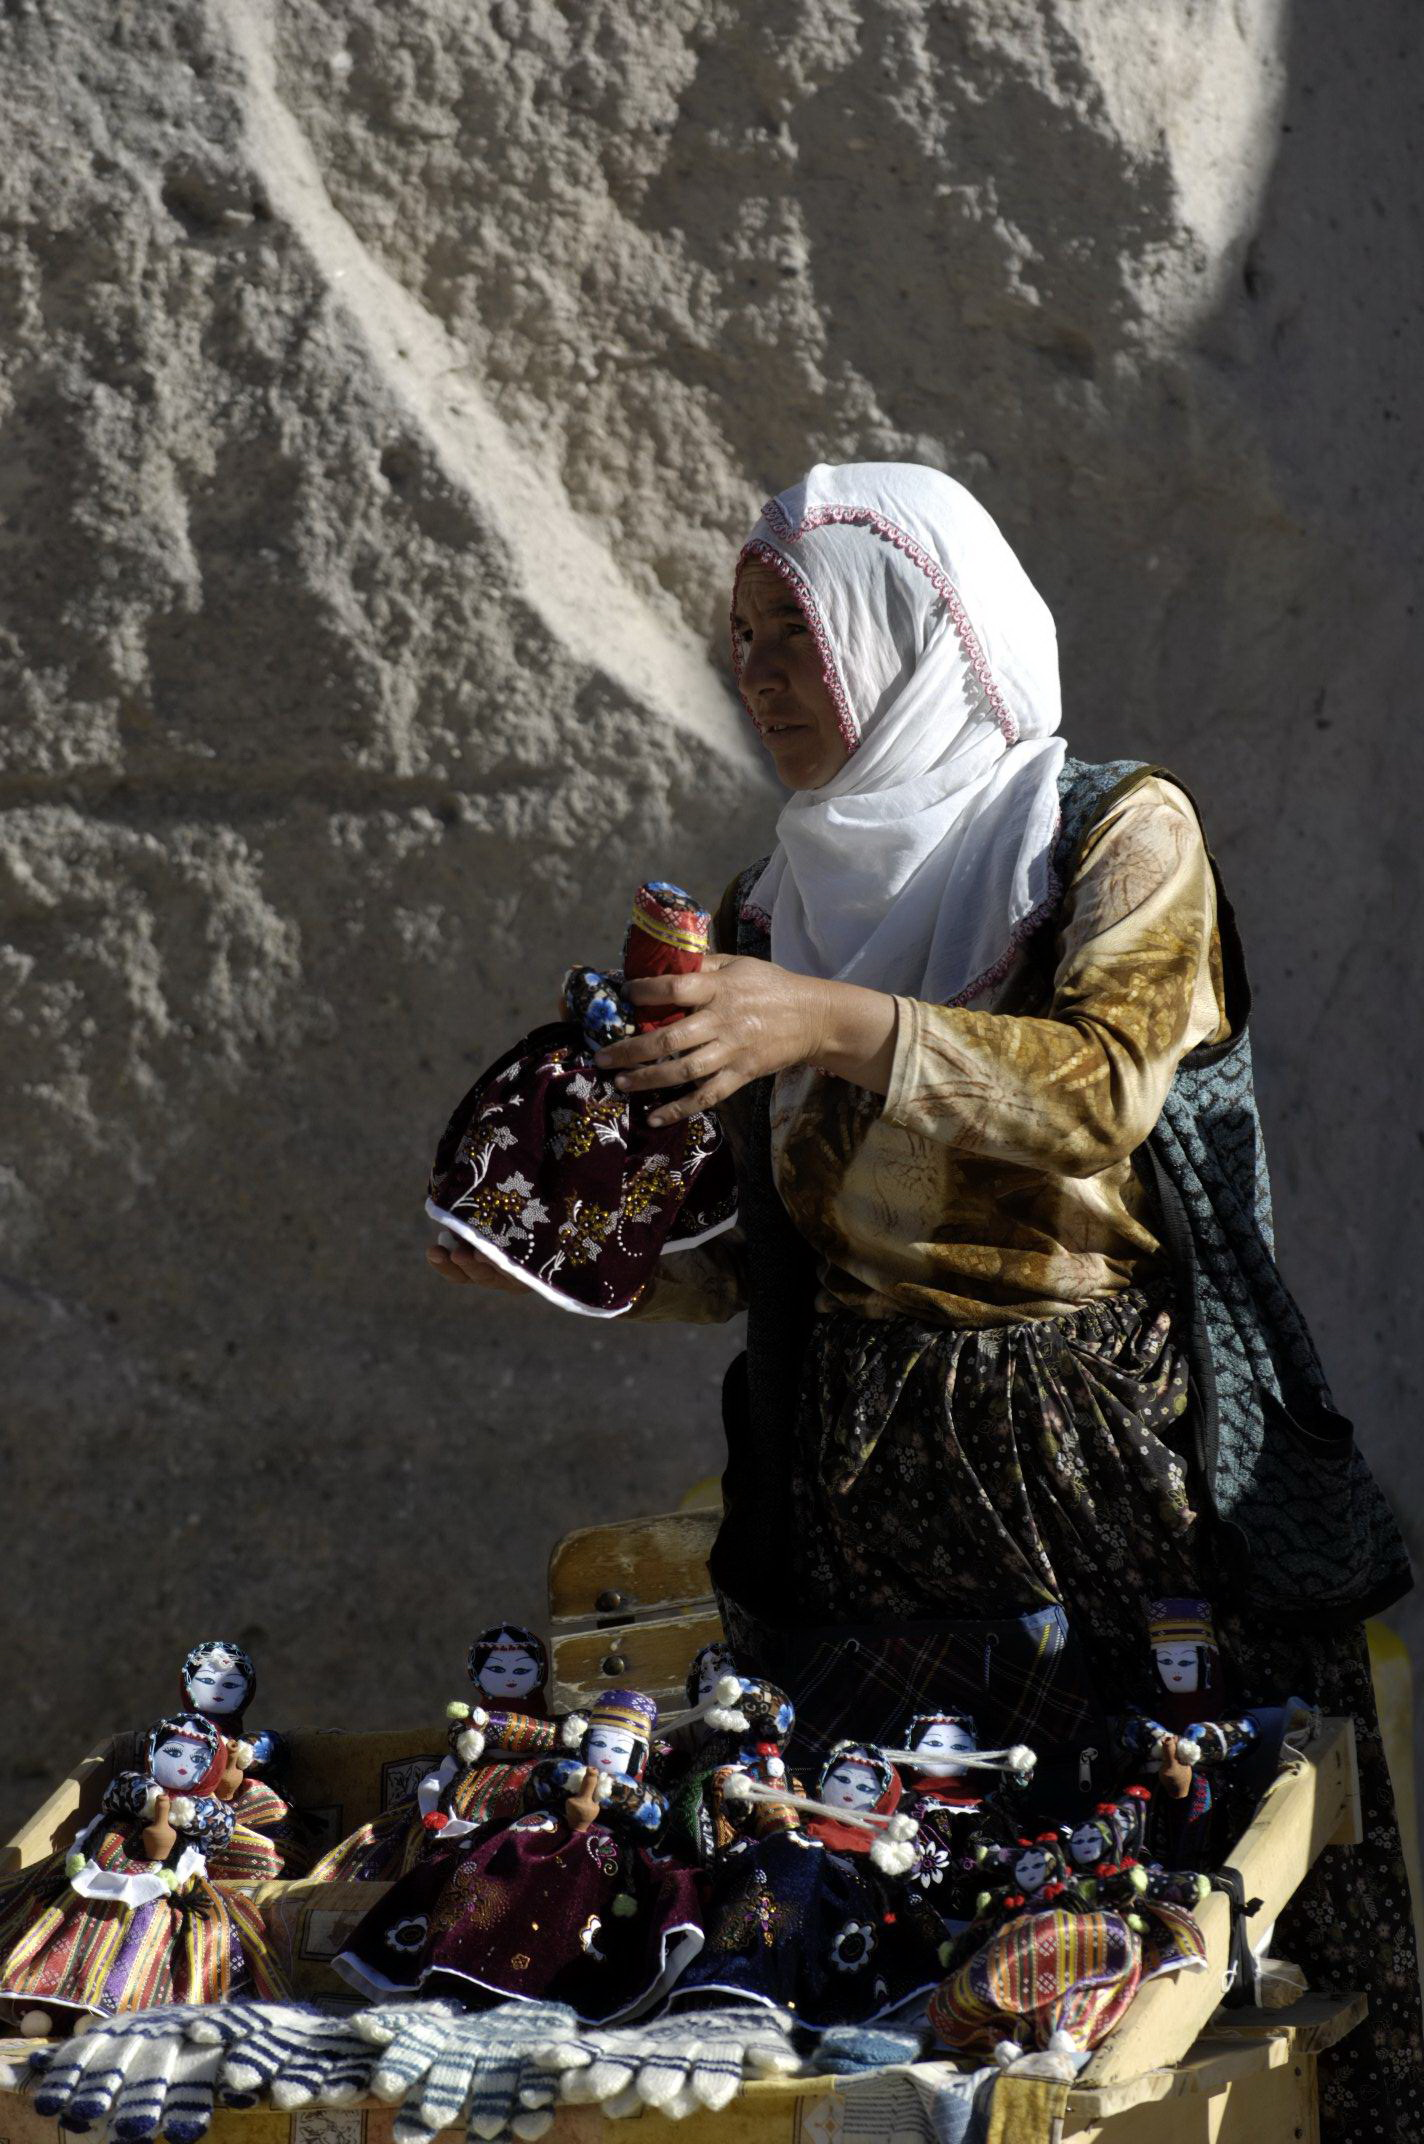 The local doll market of Soganli Village is the best place to buy Cappadocia's famous handmade dolls